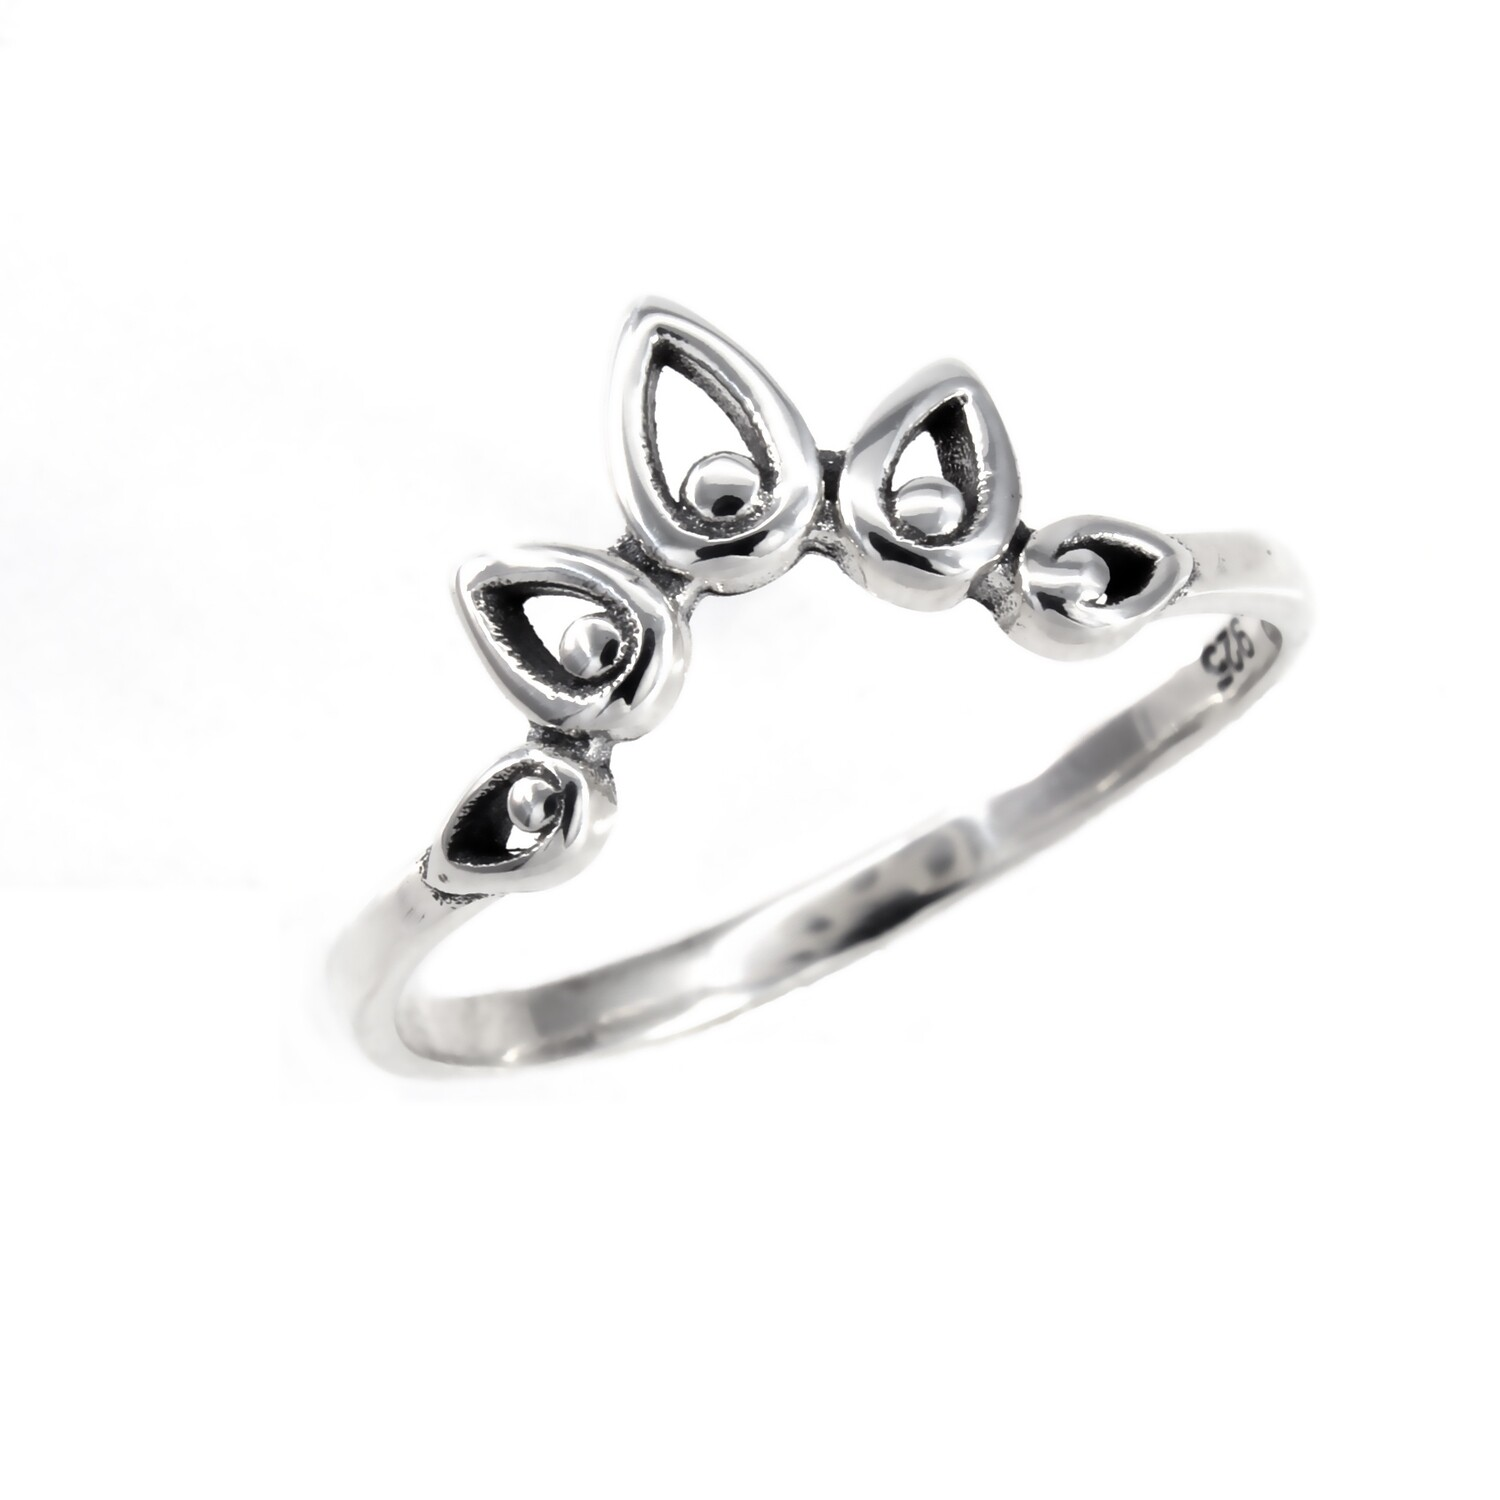 RP3700 Sterling Silver Bali Crown Ring